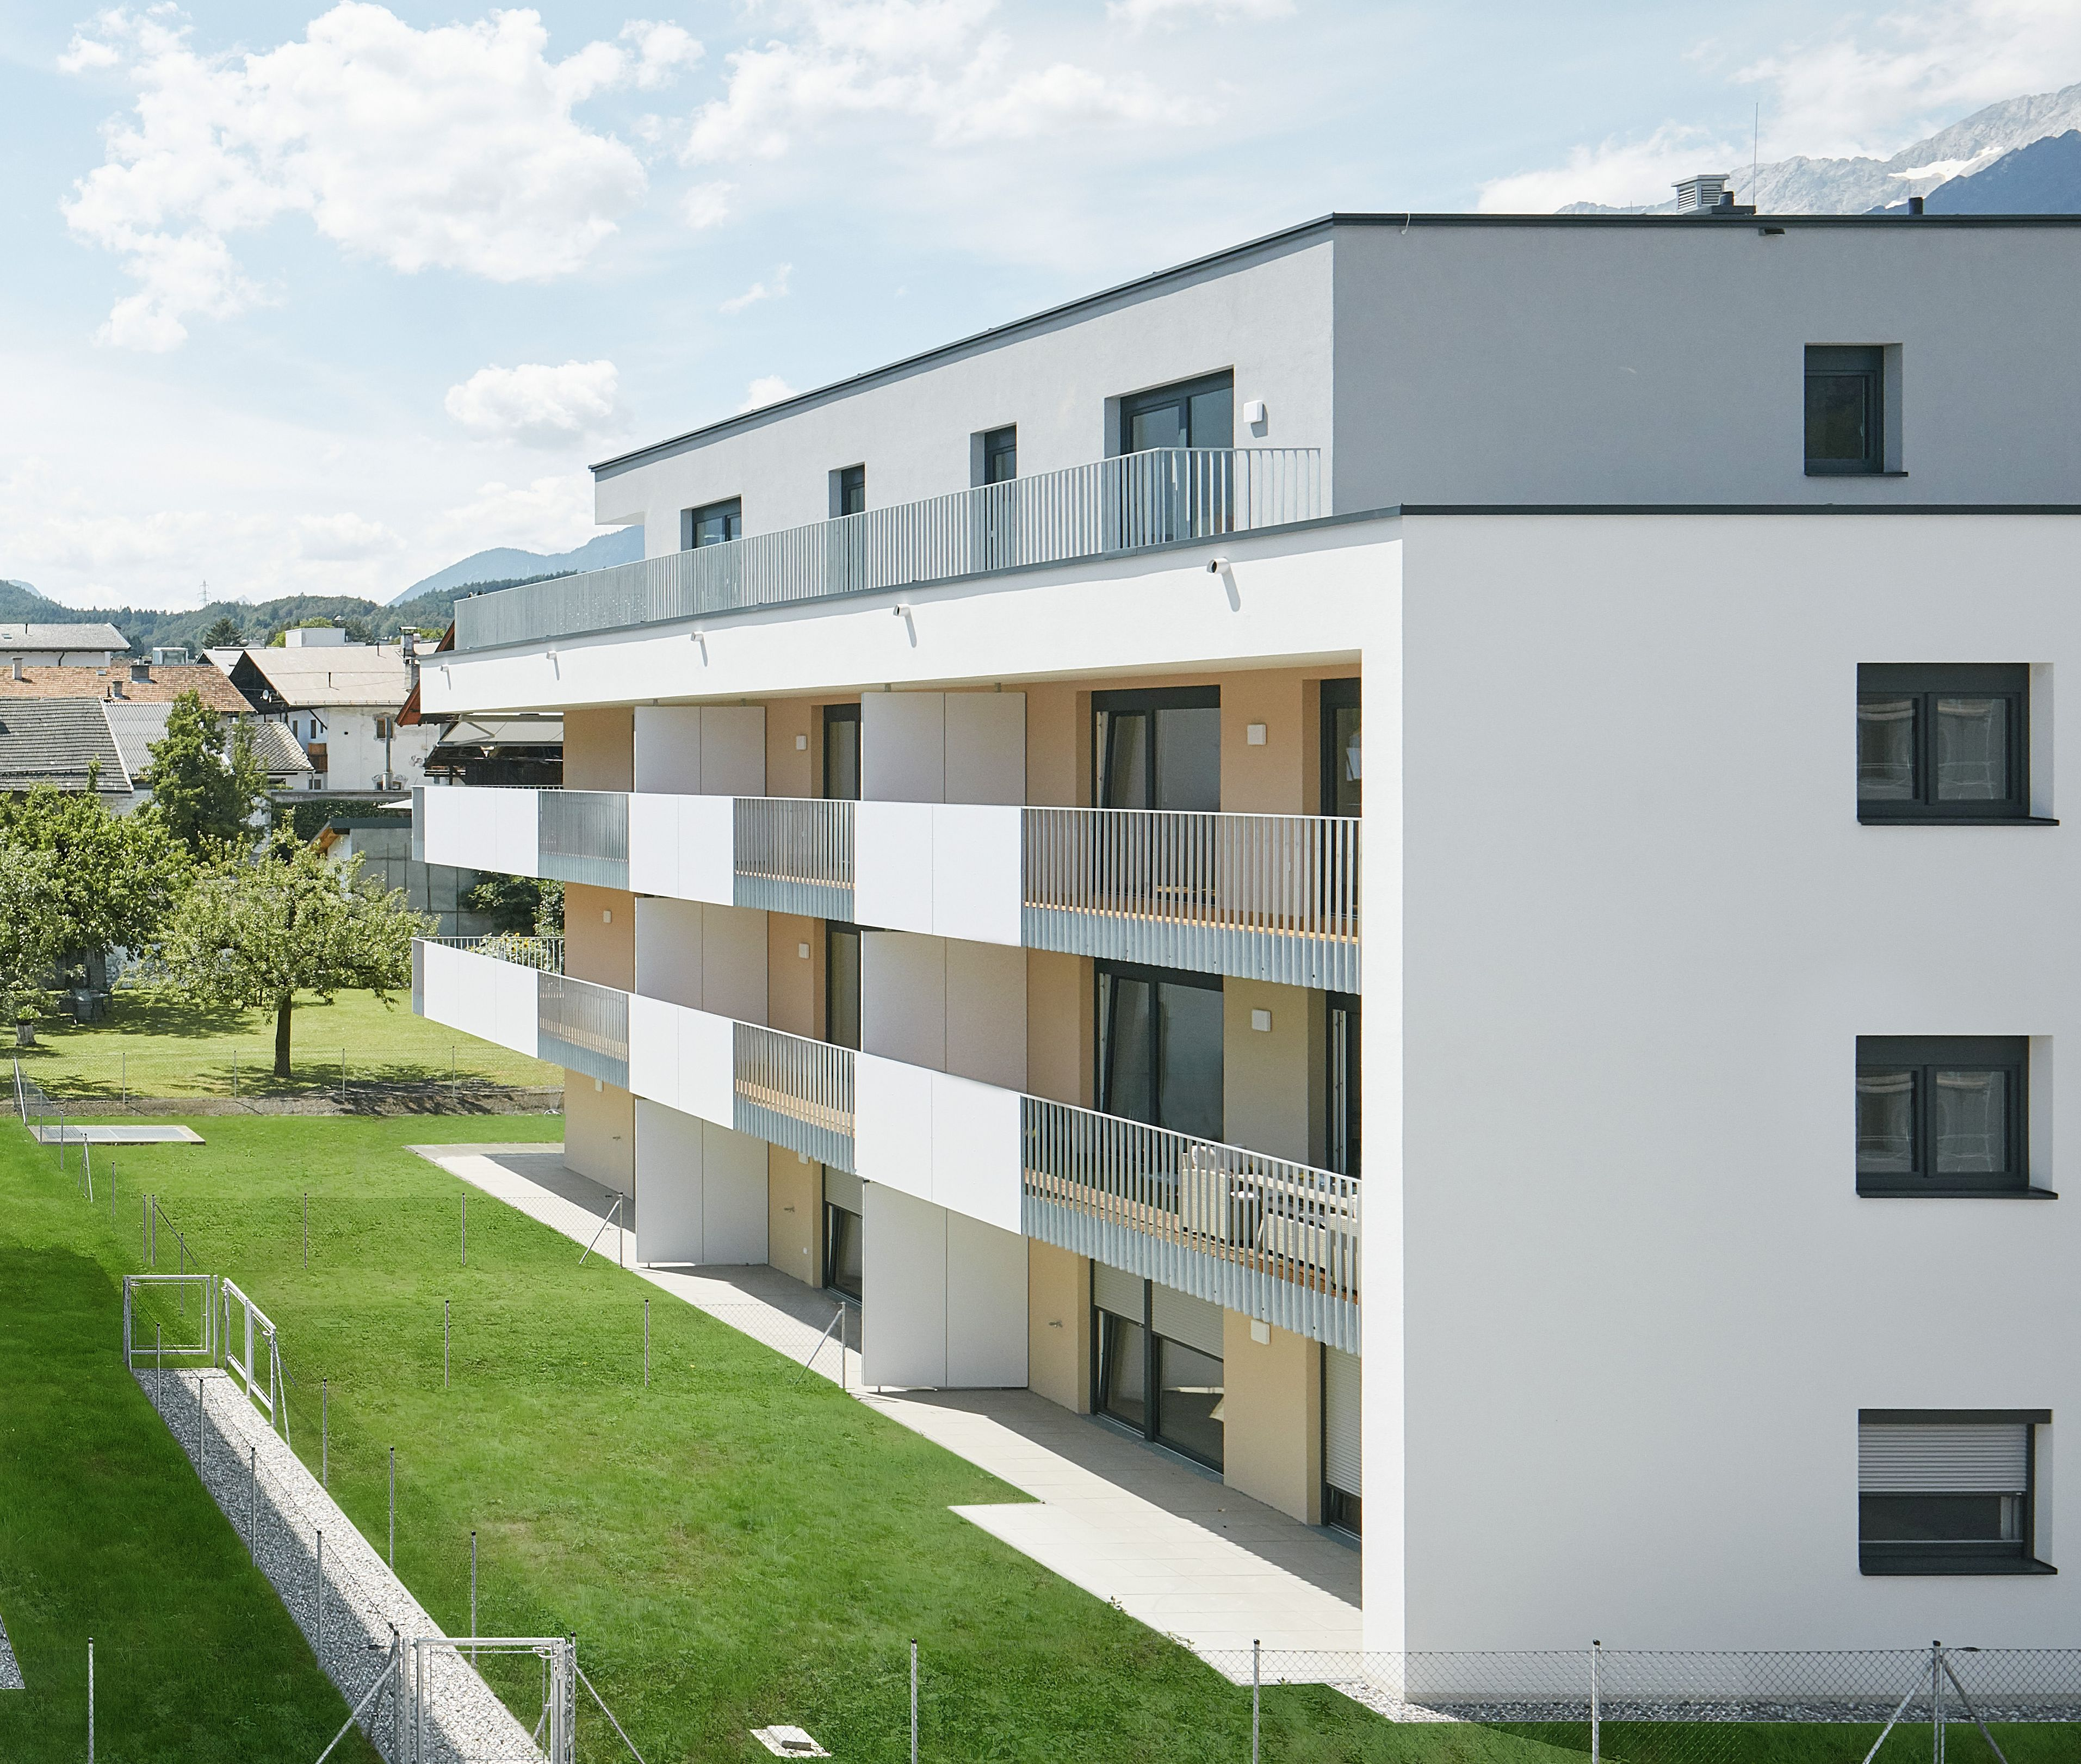 Anton-Auer-Straße 6, 6410 Telfs - Real estate project development